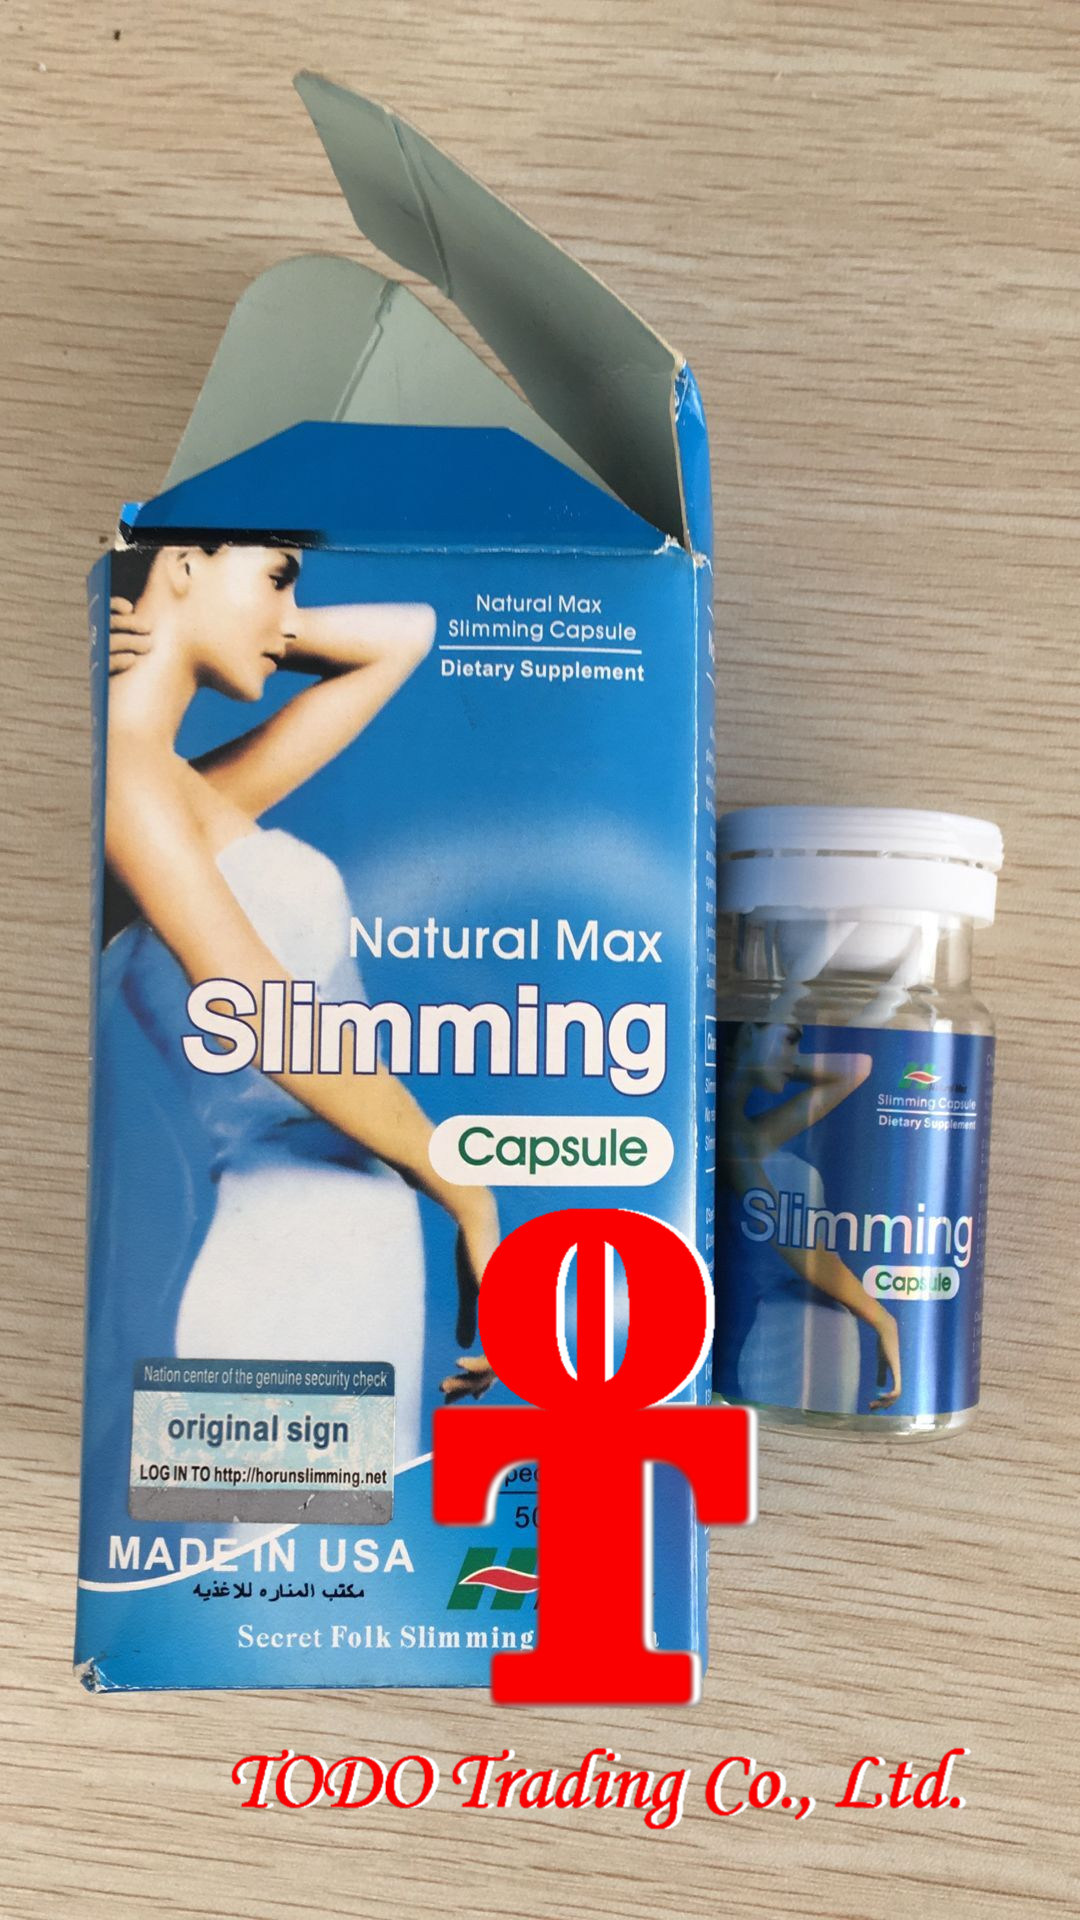 2017 Hot Sale Natural Max Slimming Weight Loss Slimming Capsule, Diet Pills